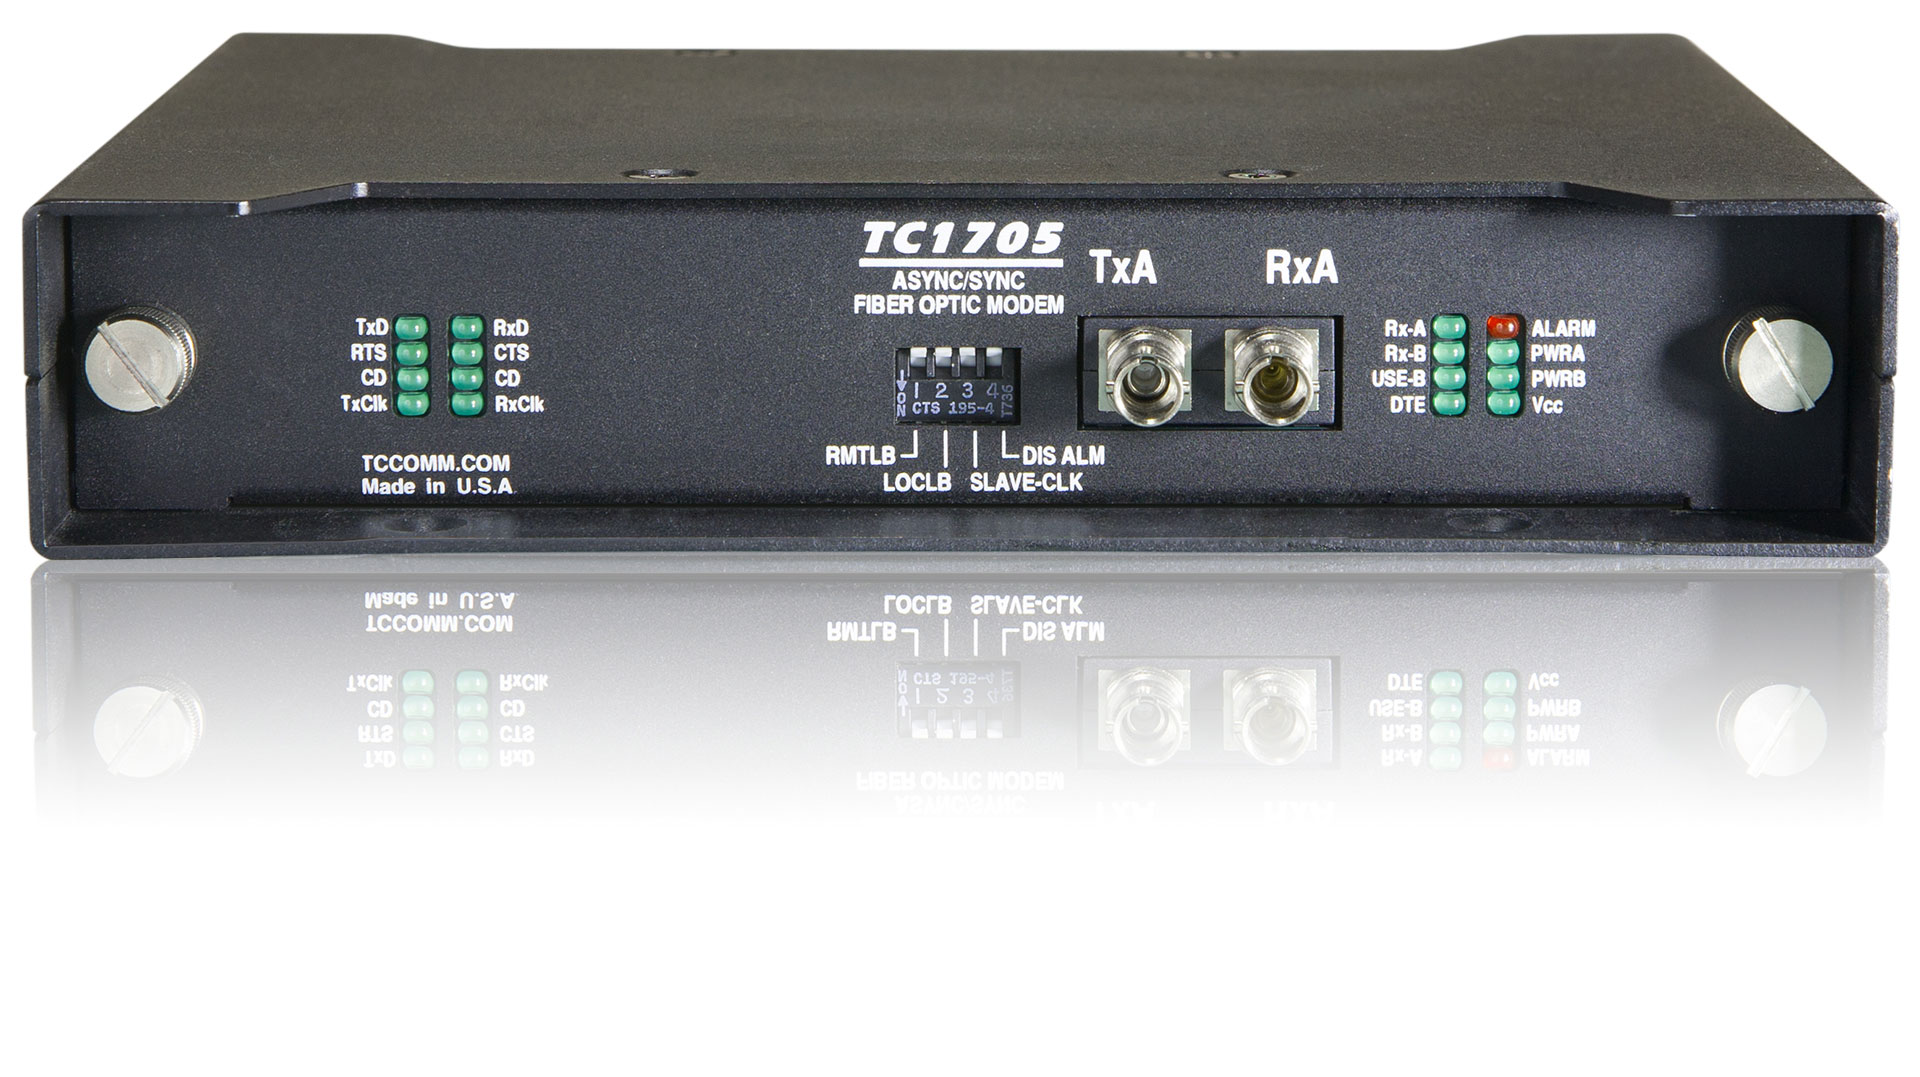 HPSG Fiber Optic Modem xl